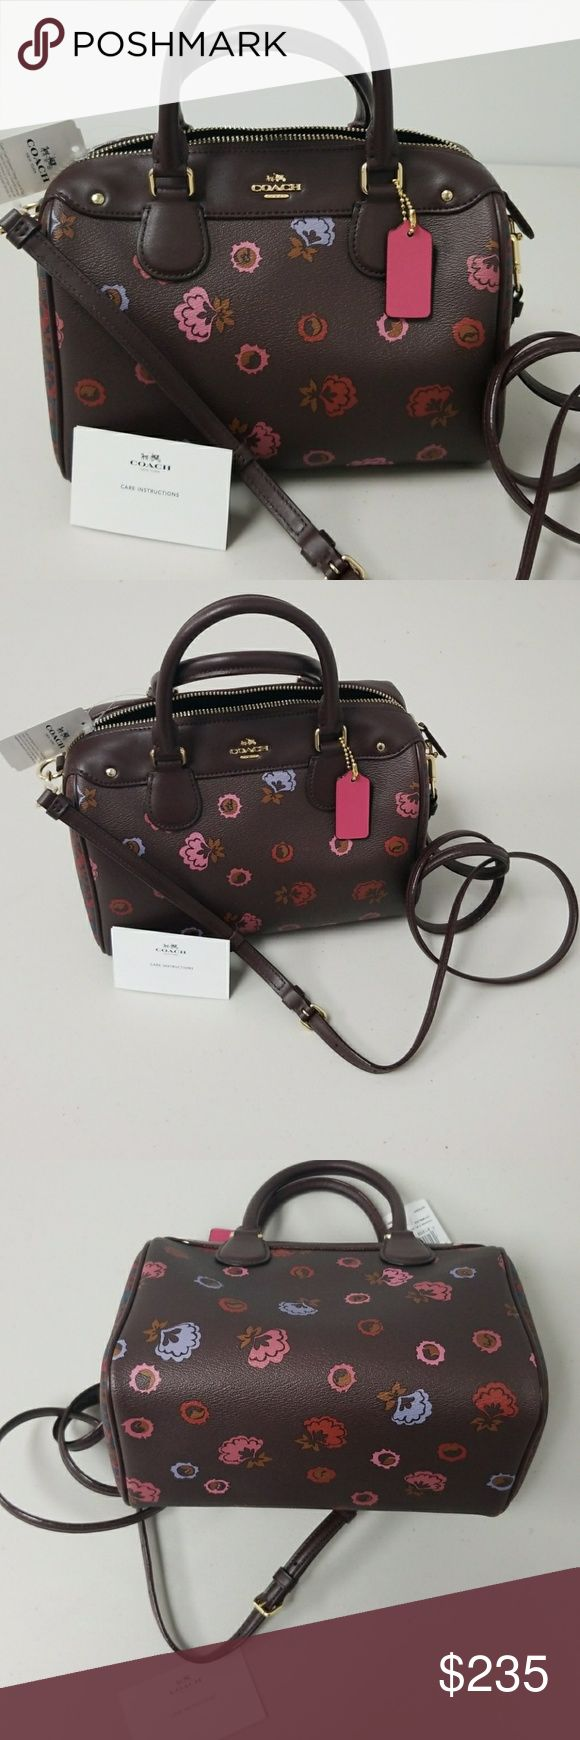 """NWT COACH Floral Bennett Bag NWT COACH Floral Bennett Mini Bag in Brown and Berry, Pink, and Purple Primrose with Goldtone hardware and zip closure.   Interior lined in coordinating berry/brown fabric with 1 zip pocket and 1 open bill slot.  9.5""""x7×5"""" with 48"""" adjustable leather drop strap and 4.5"""" double hands Coach Bags"""